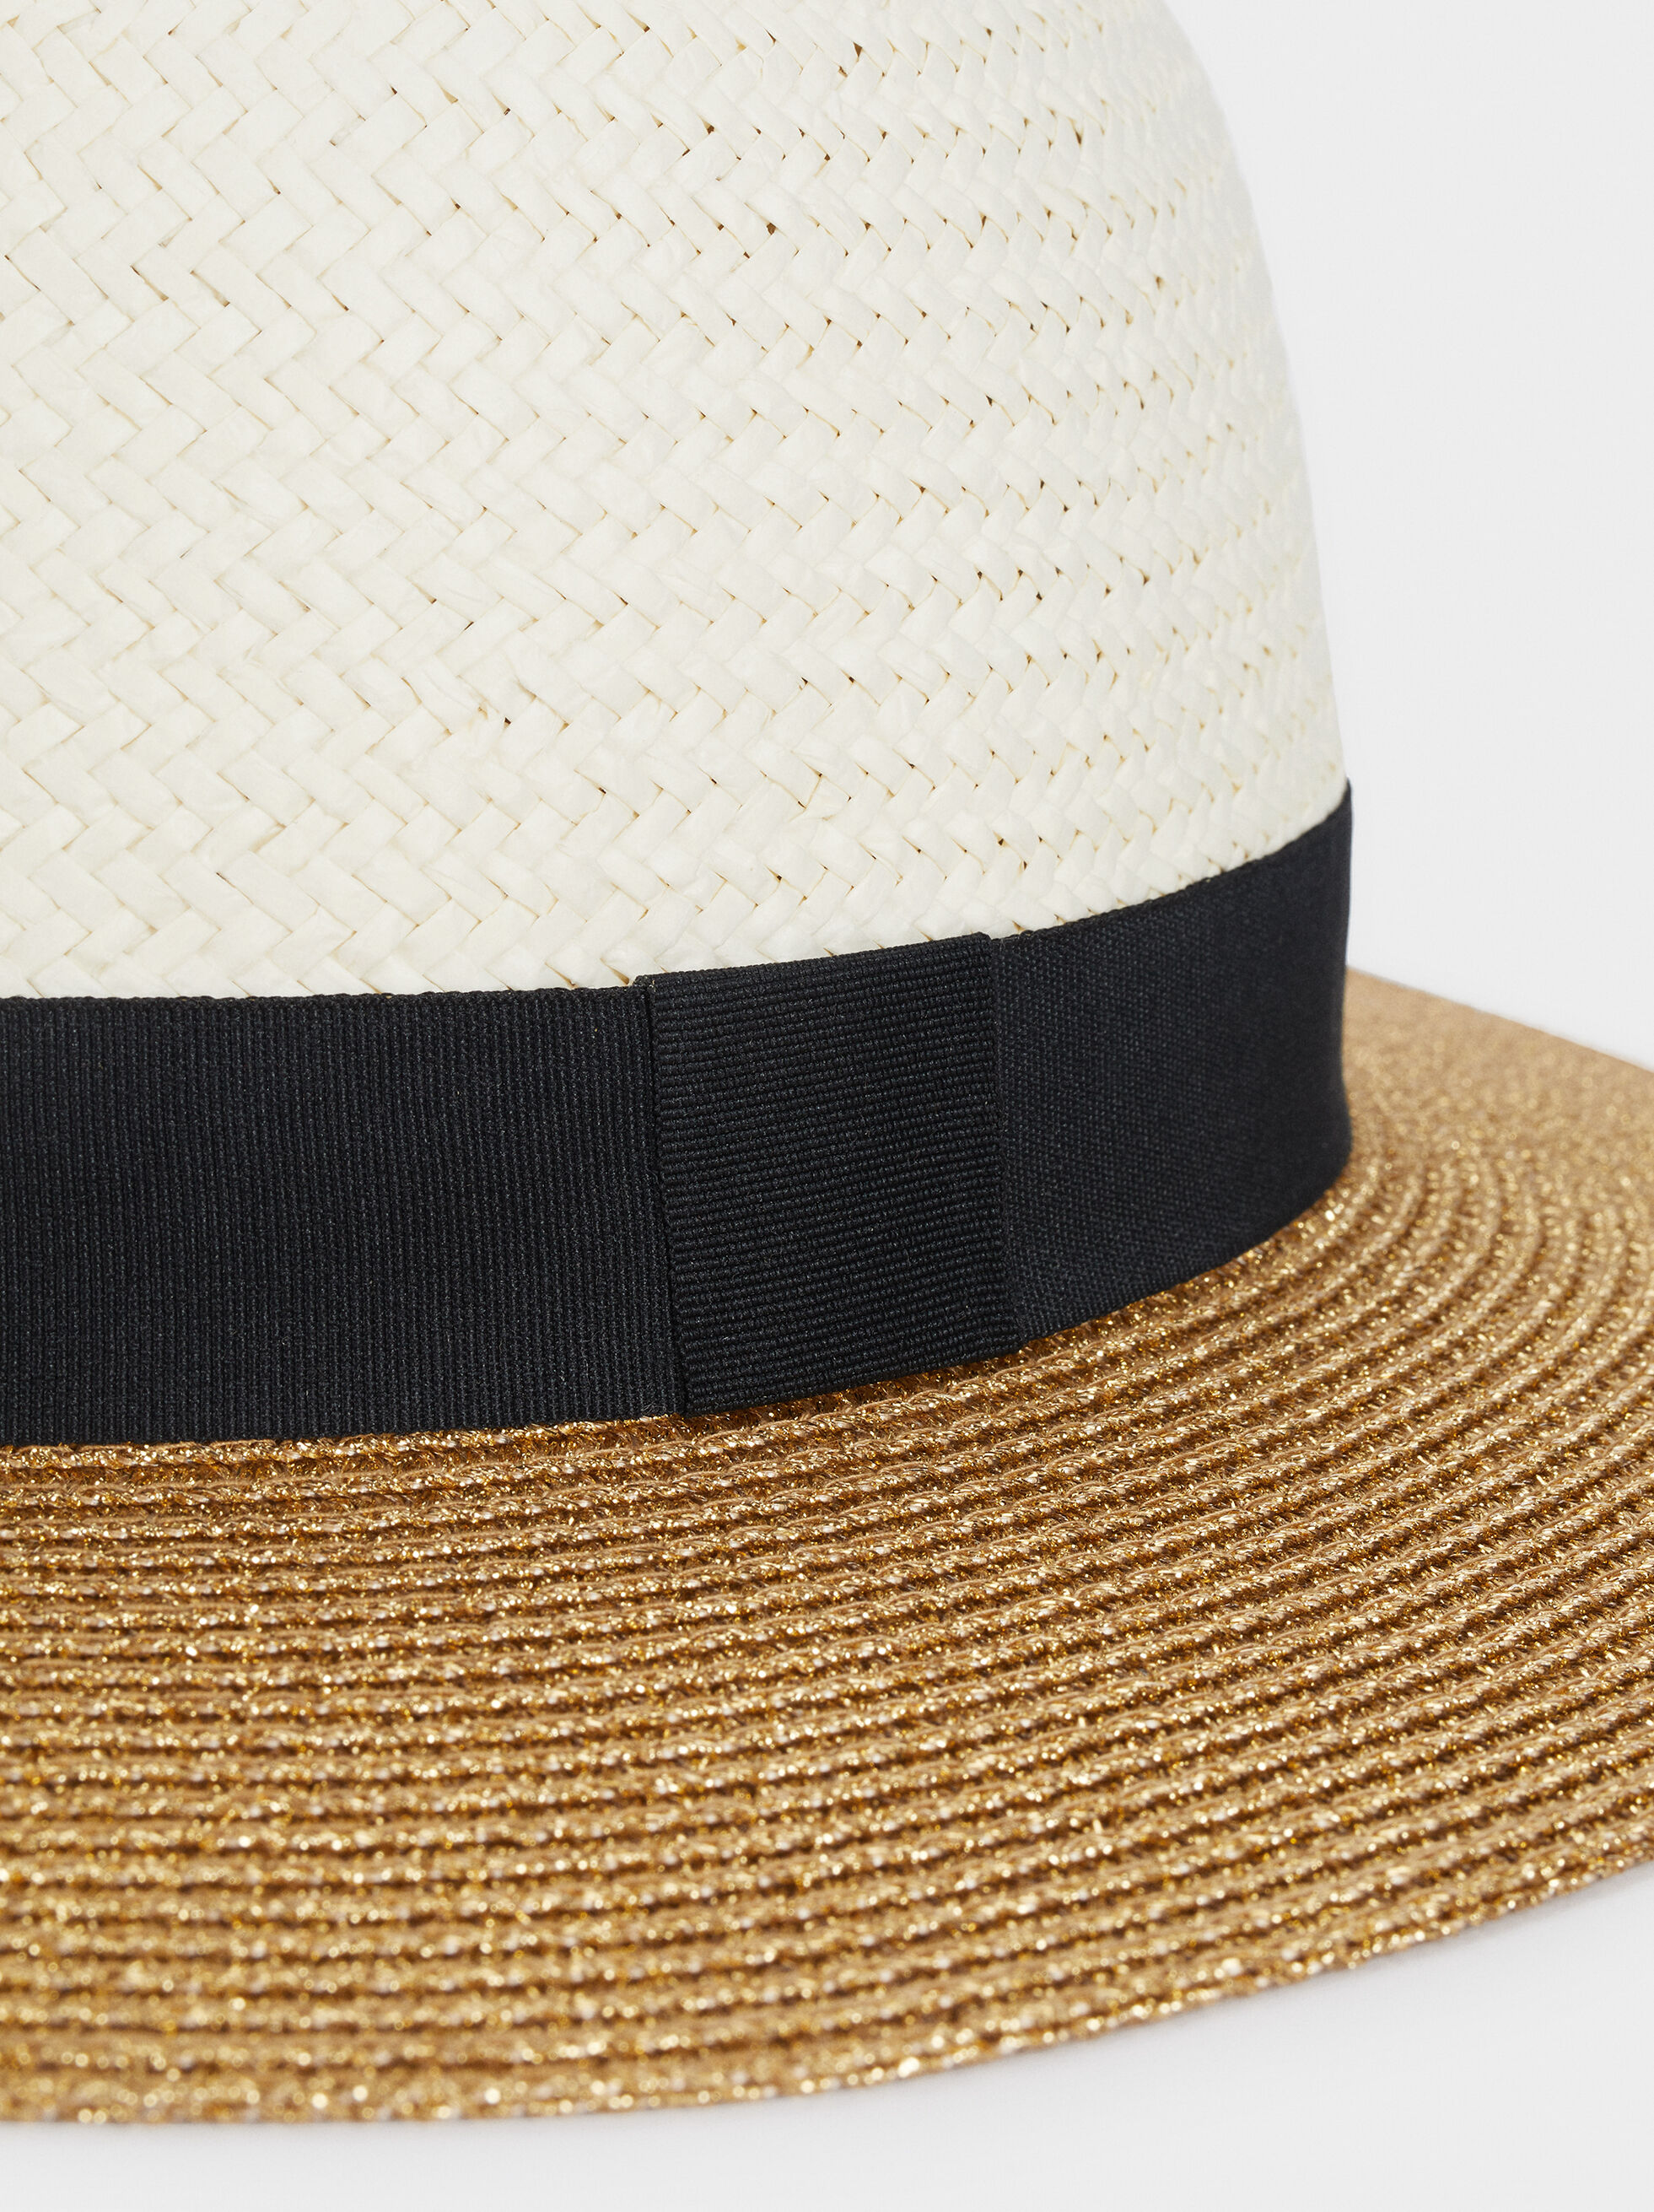 Textured Straw Hat With Contrast Band, Beige, hi-res